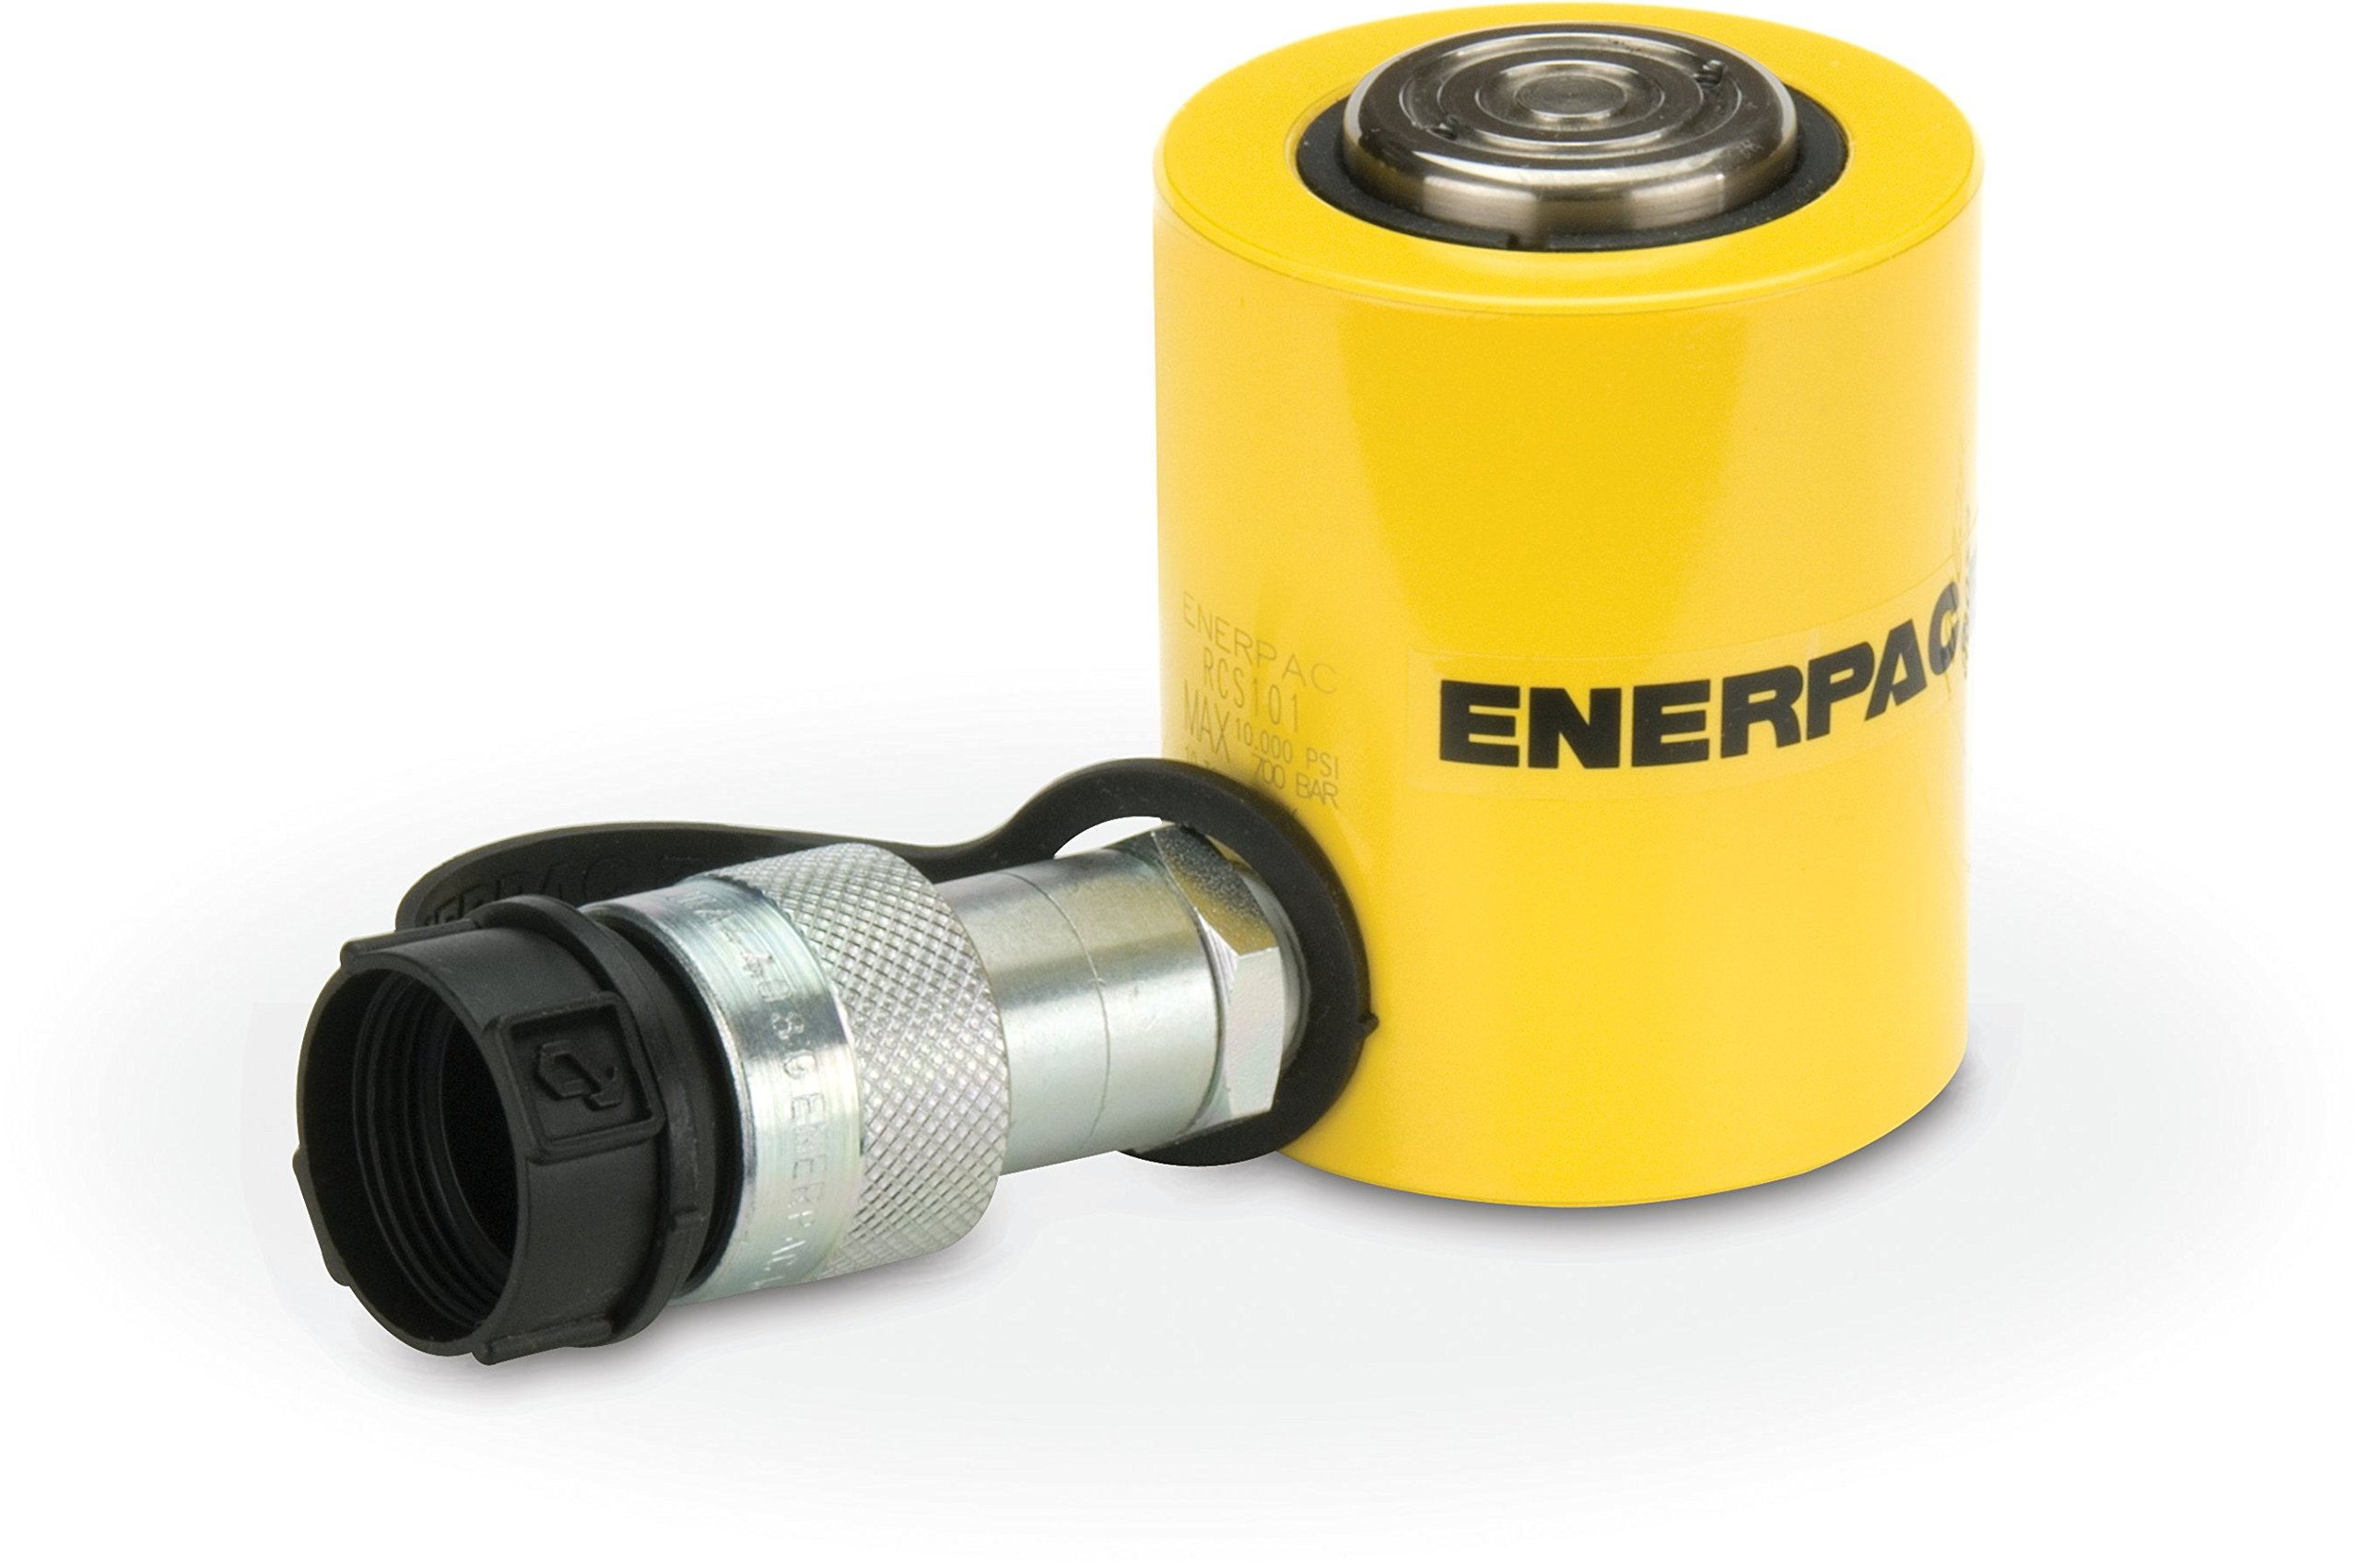 Enerpac RCS-101 Single-Acting Low-Height Hydraulic Cylinder with 10 Ton Capacity, Single Port, 1.5'' Stroke Length